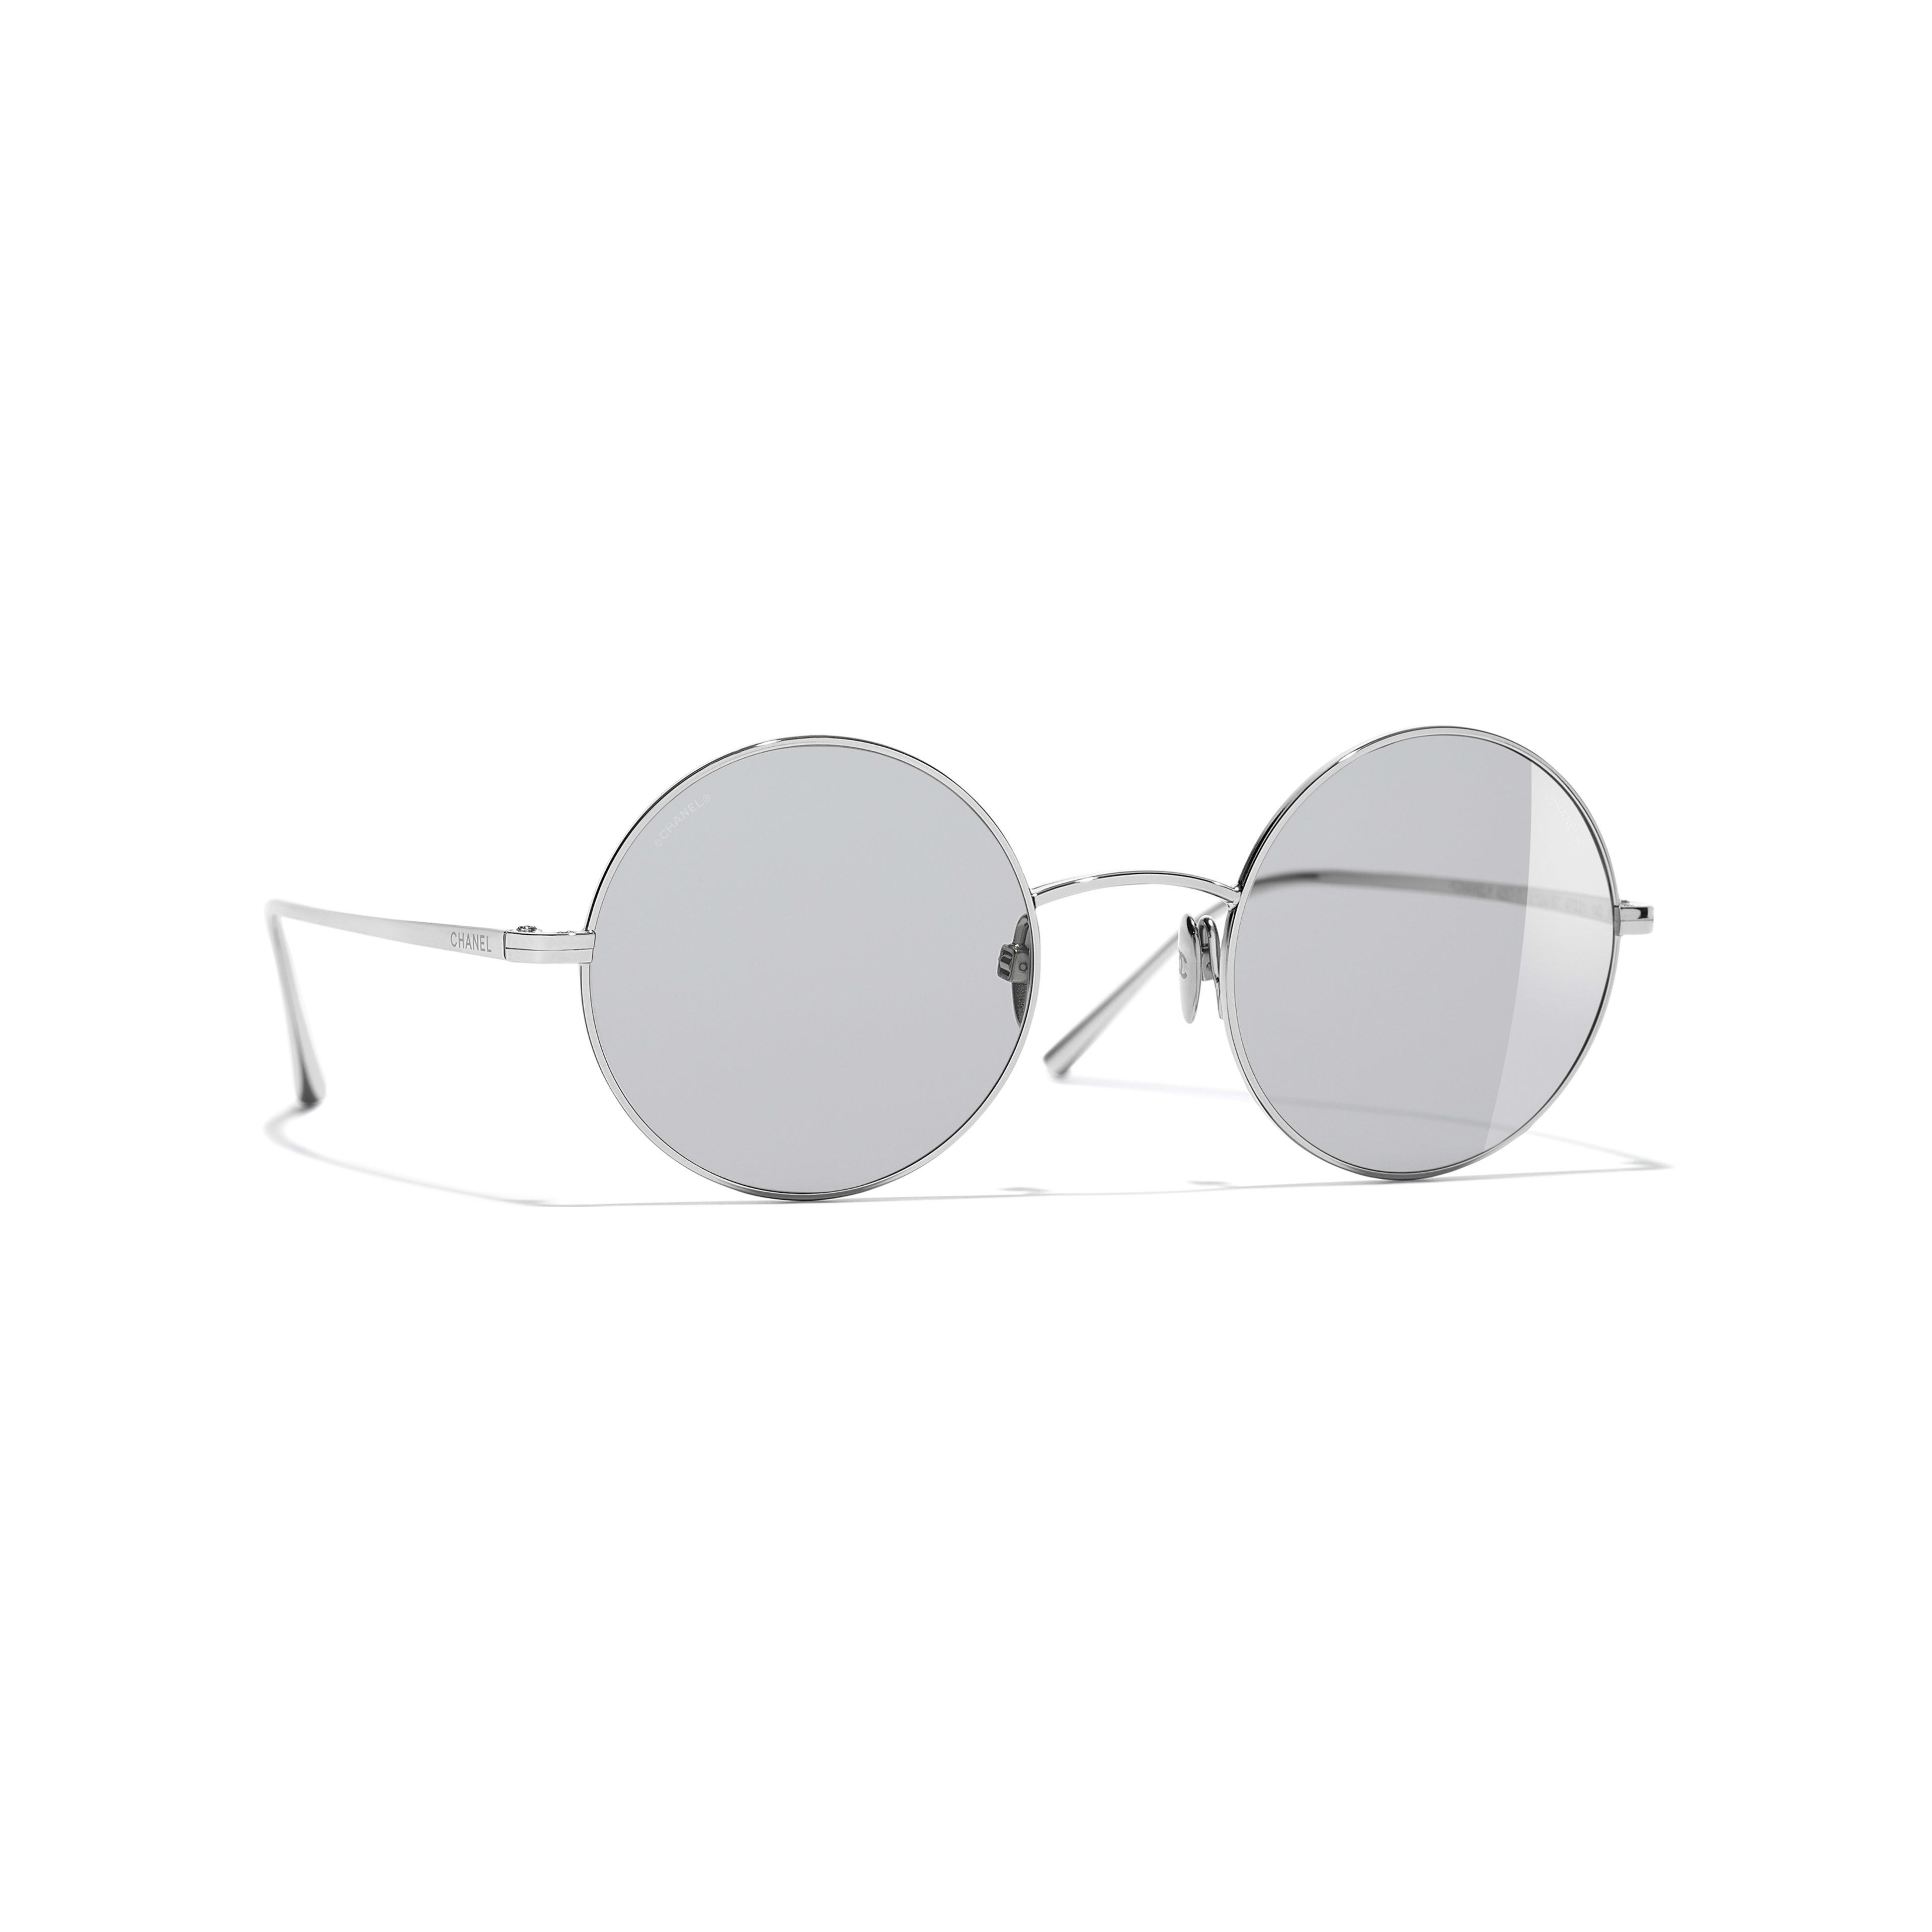 Round Sunglasses - Silver - Titanium - CHANEL - Default view - see standard sized version